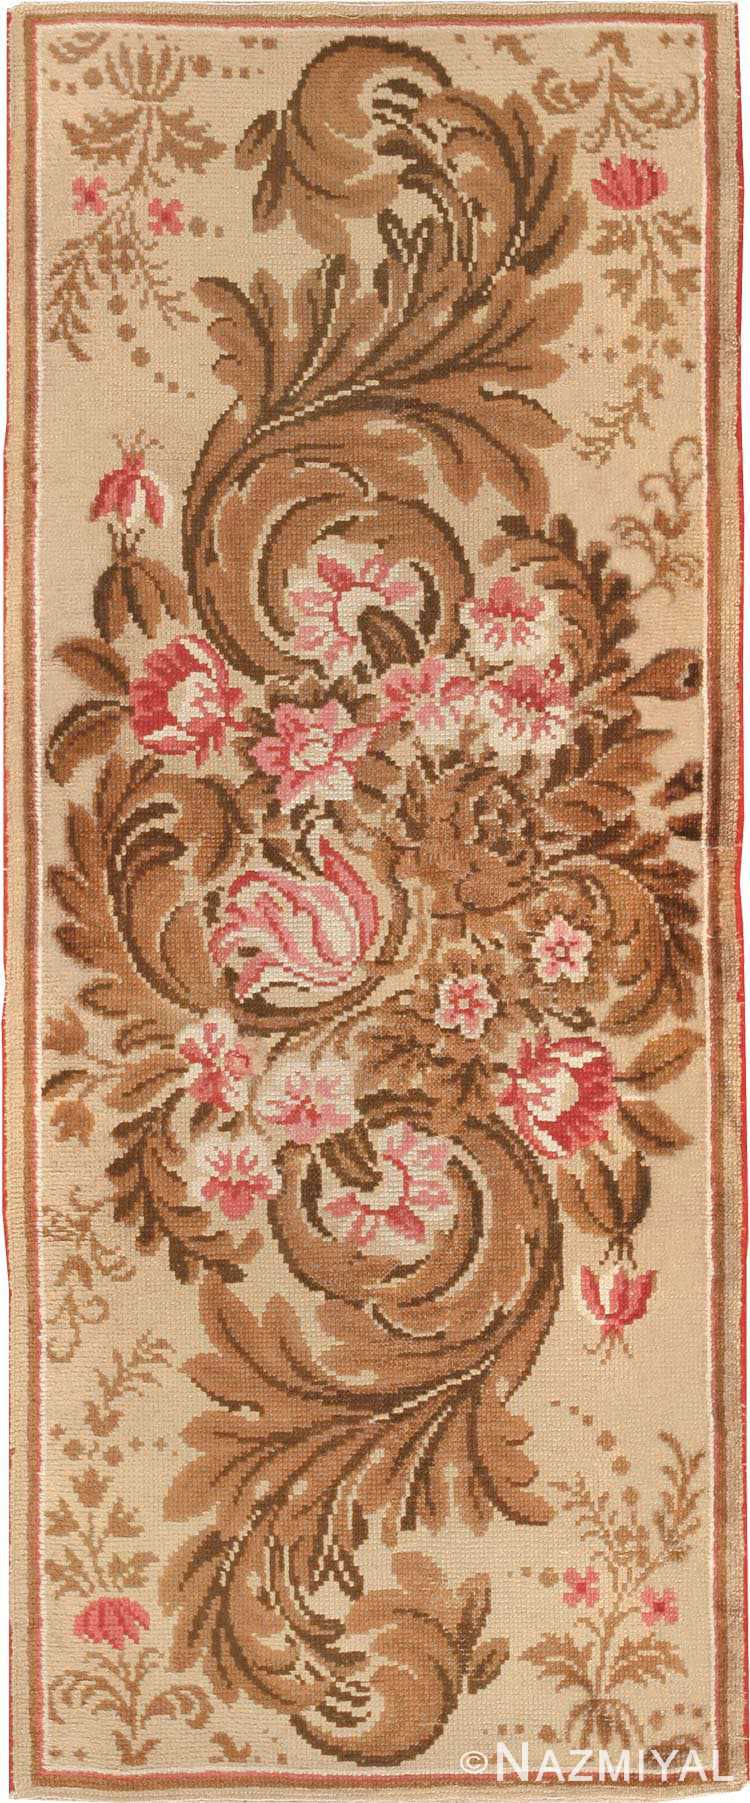 Antique Floral English Rug #2892 by Nazmiyal Antique Rugs